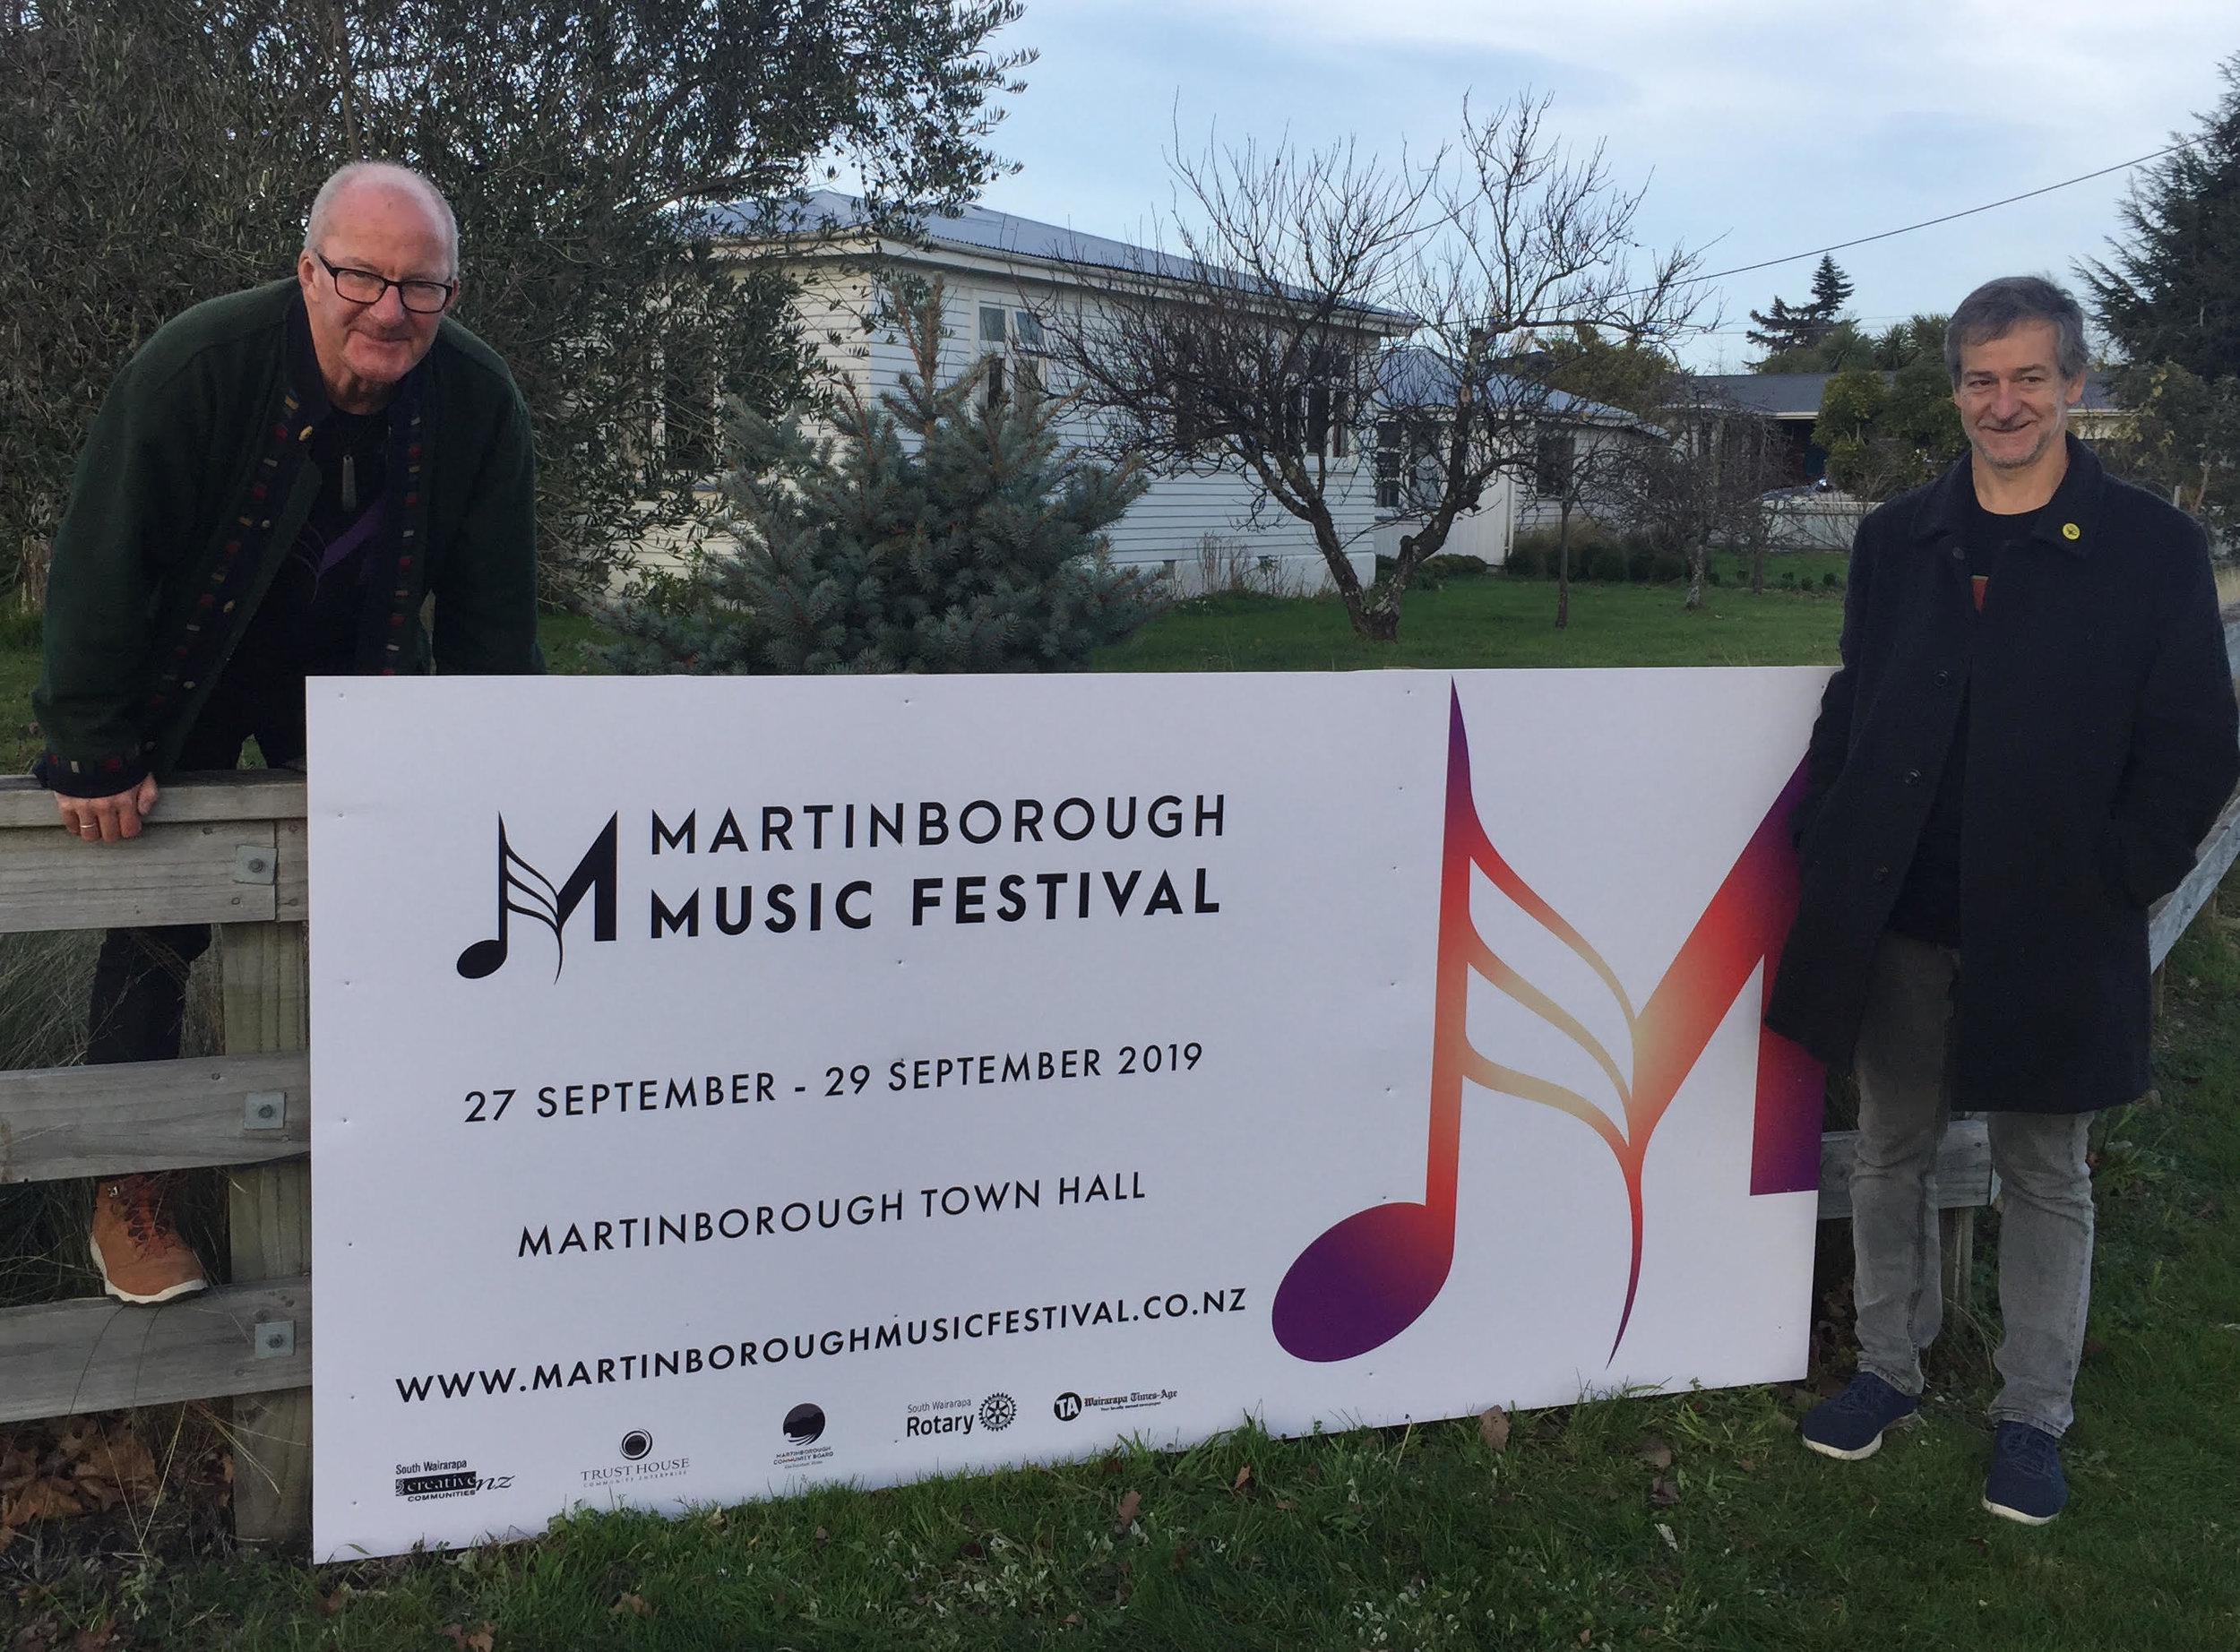 The 2019 sign goes up on the corner of Kitchener and Princess to welcome visitors to Martinborough. With Brendan Smyth (left) and Andrew Morrison … and thanks to Glenys Hansen for the fence.